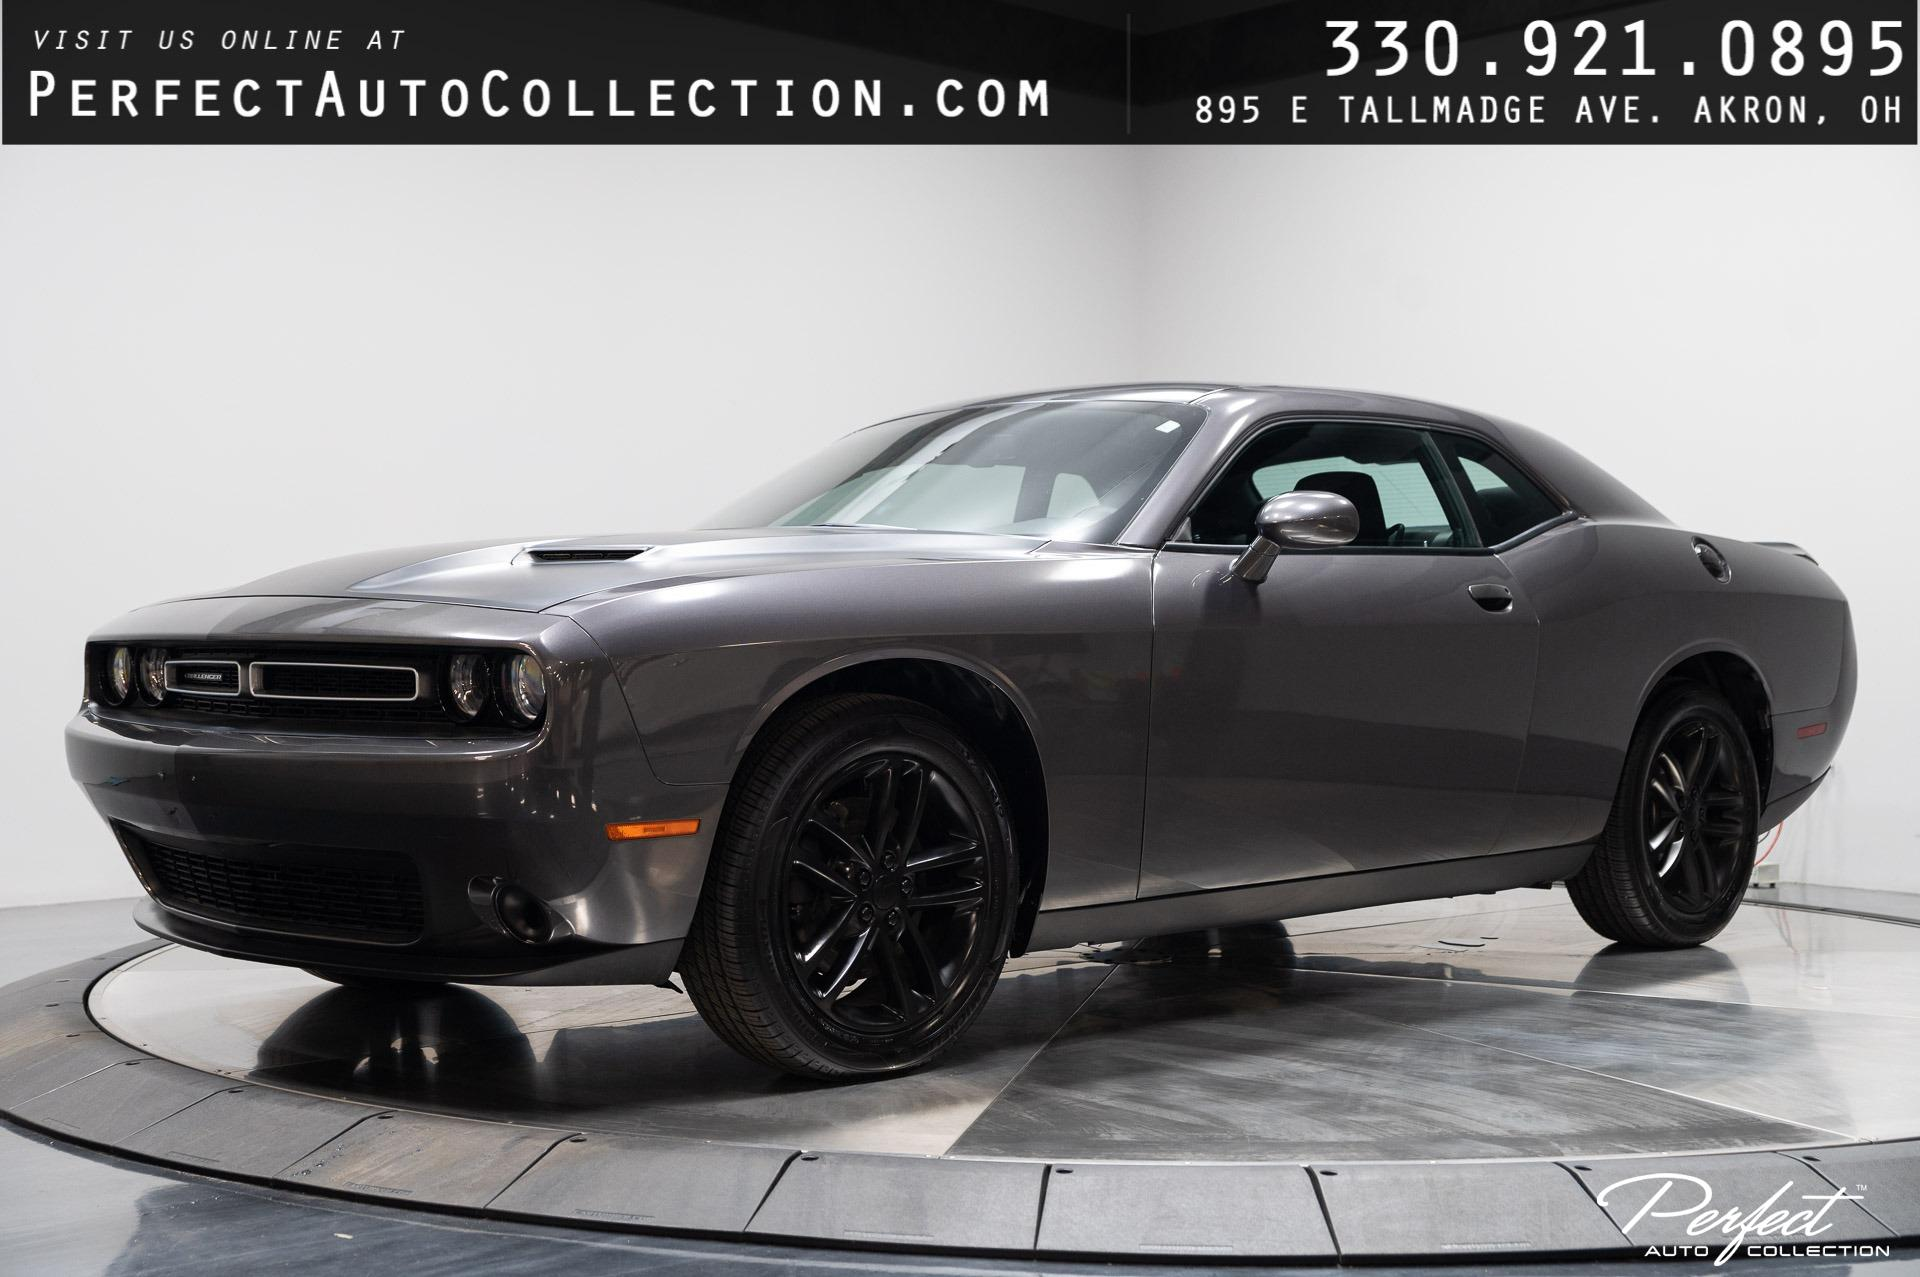 Used 2019 Dodge Challenger SXT for sale $23,895 at Perfect Auto Collection in Akron OH 44310 1